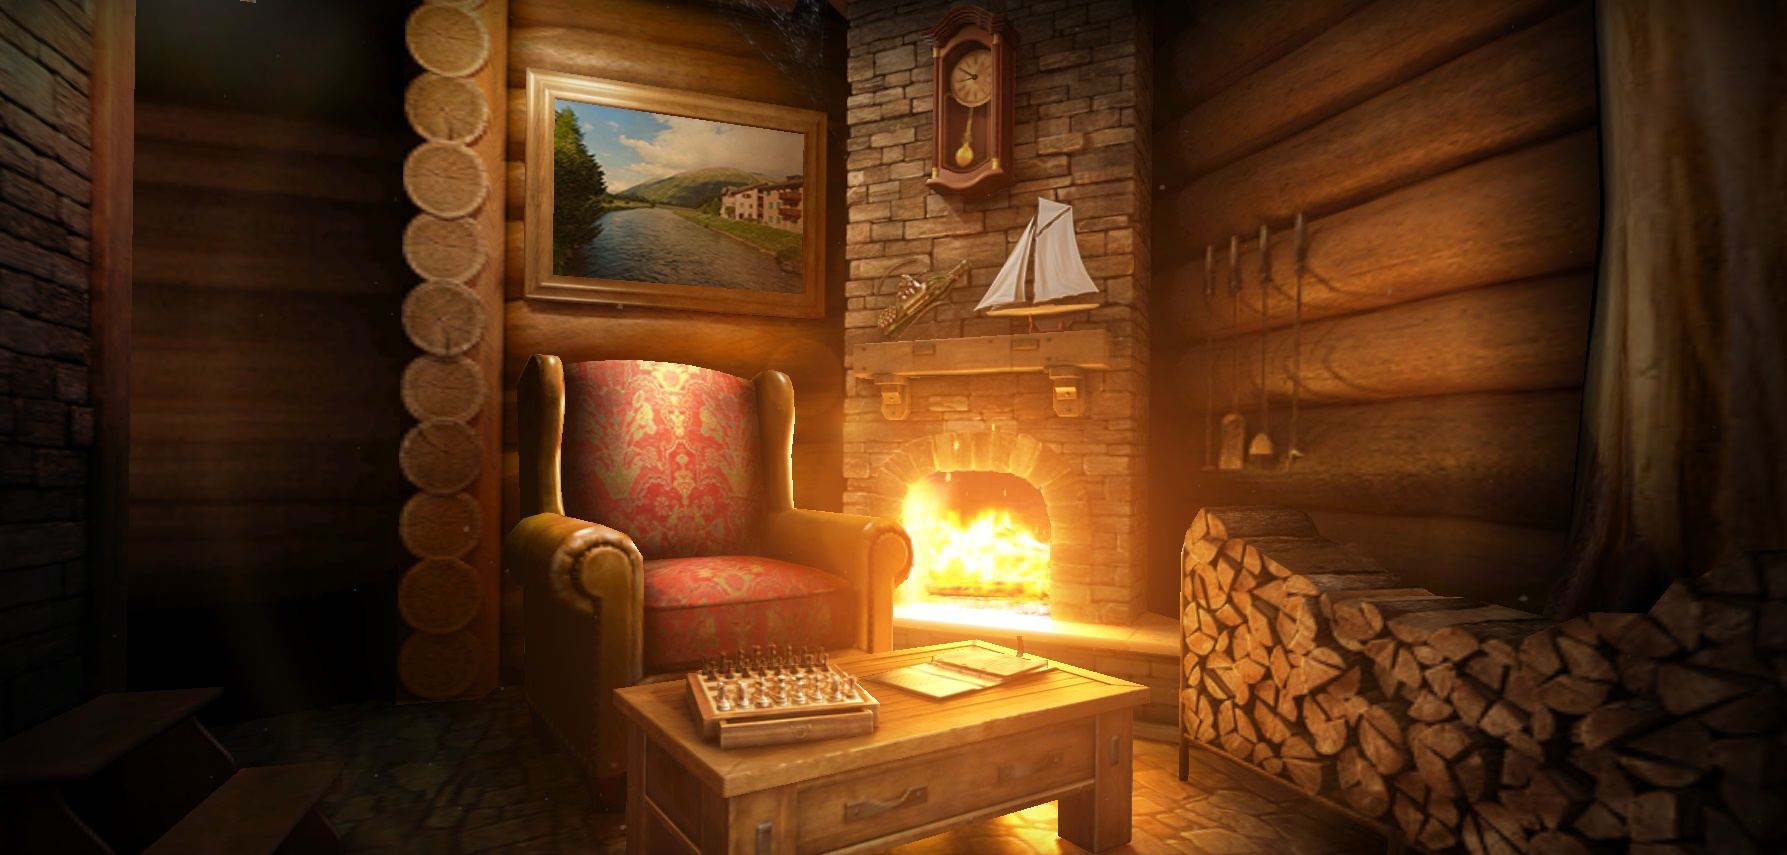 My-Log-Cabin-live-wallpaper